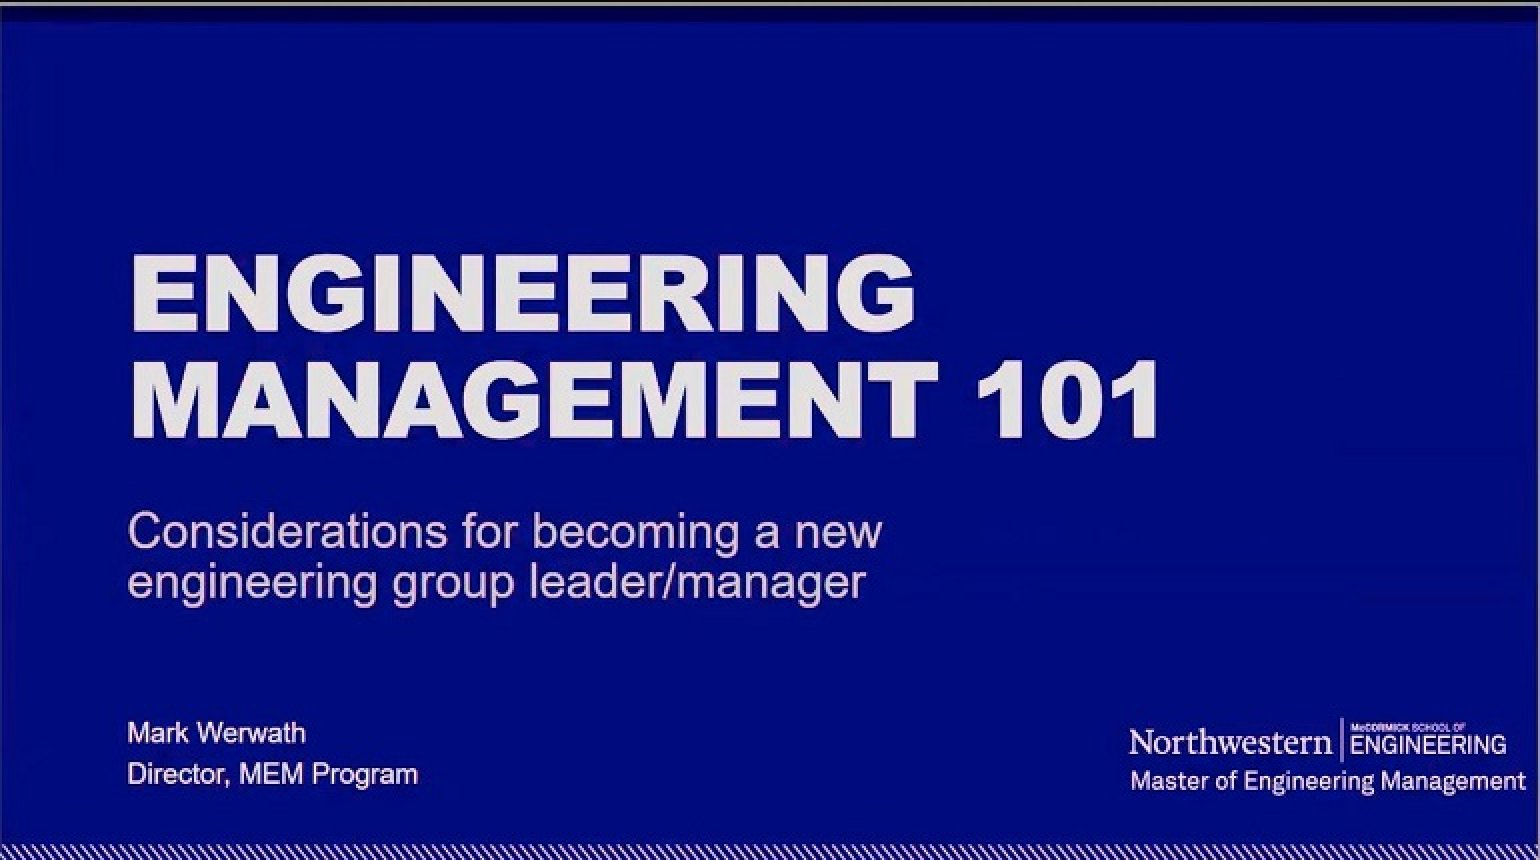 Engineering Management 101 Video